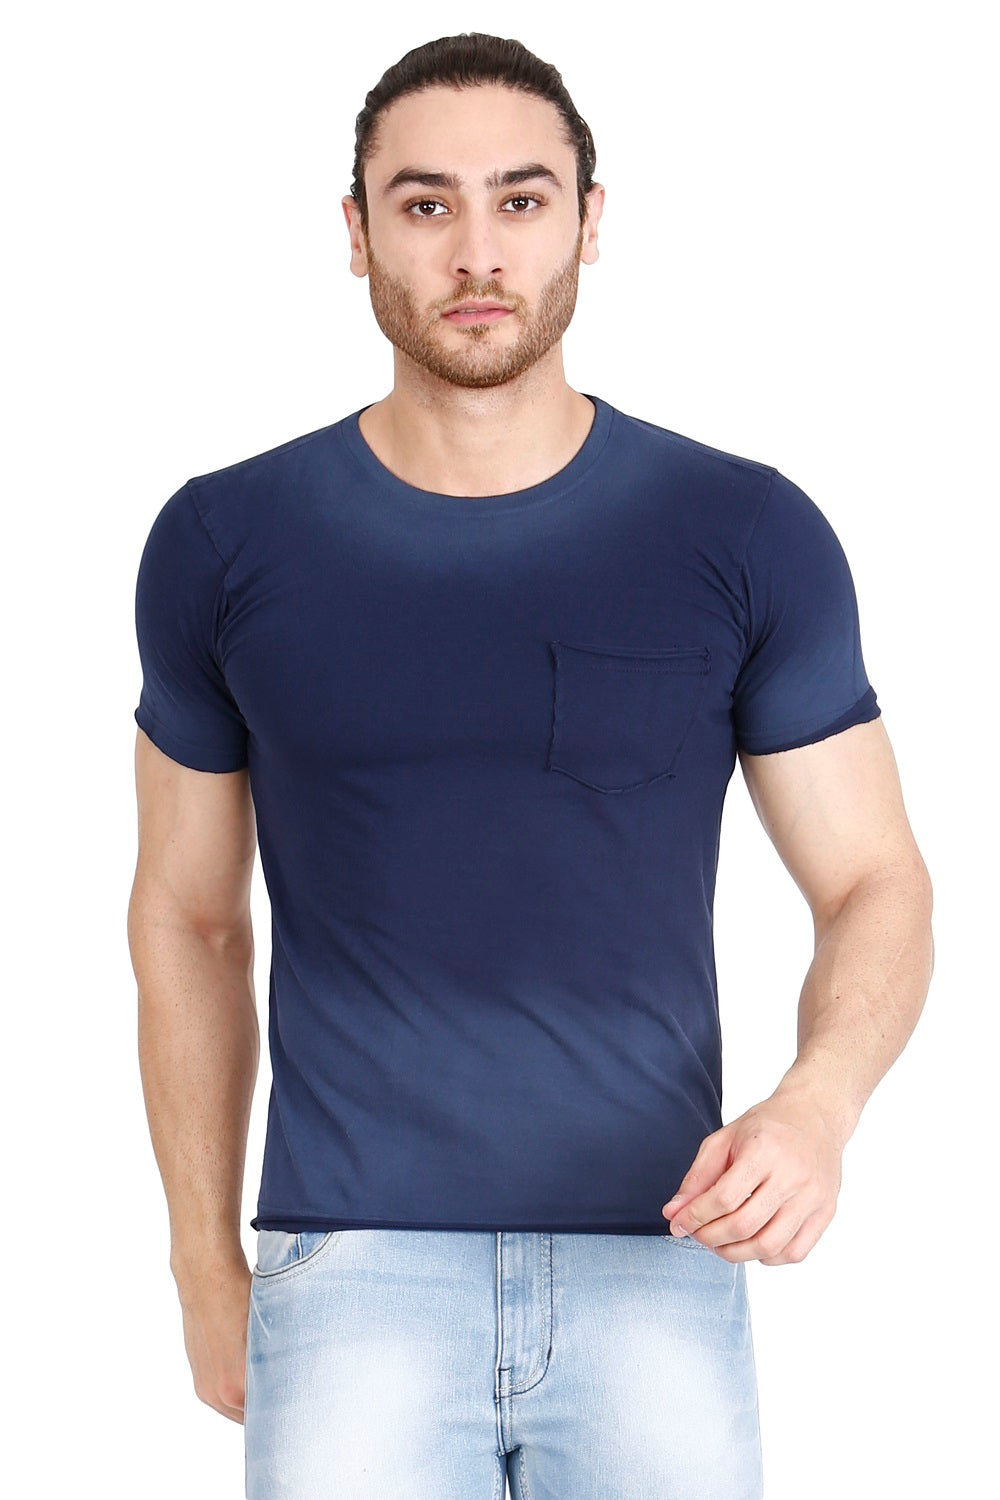 Hunt and Howe Men's Ombry dyed Indigo T-Shirt